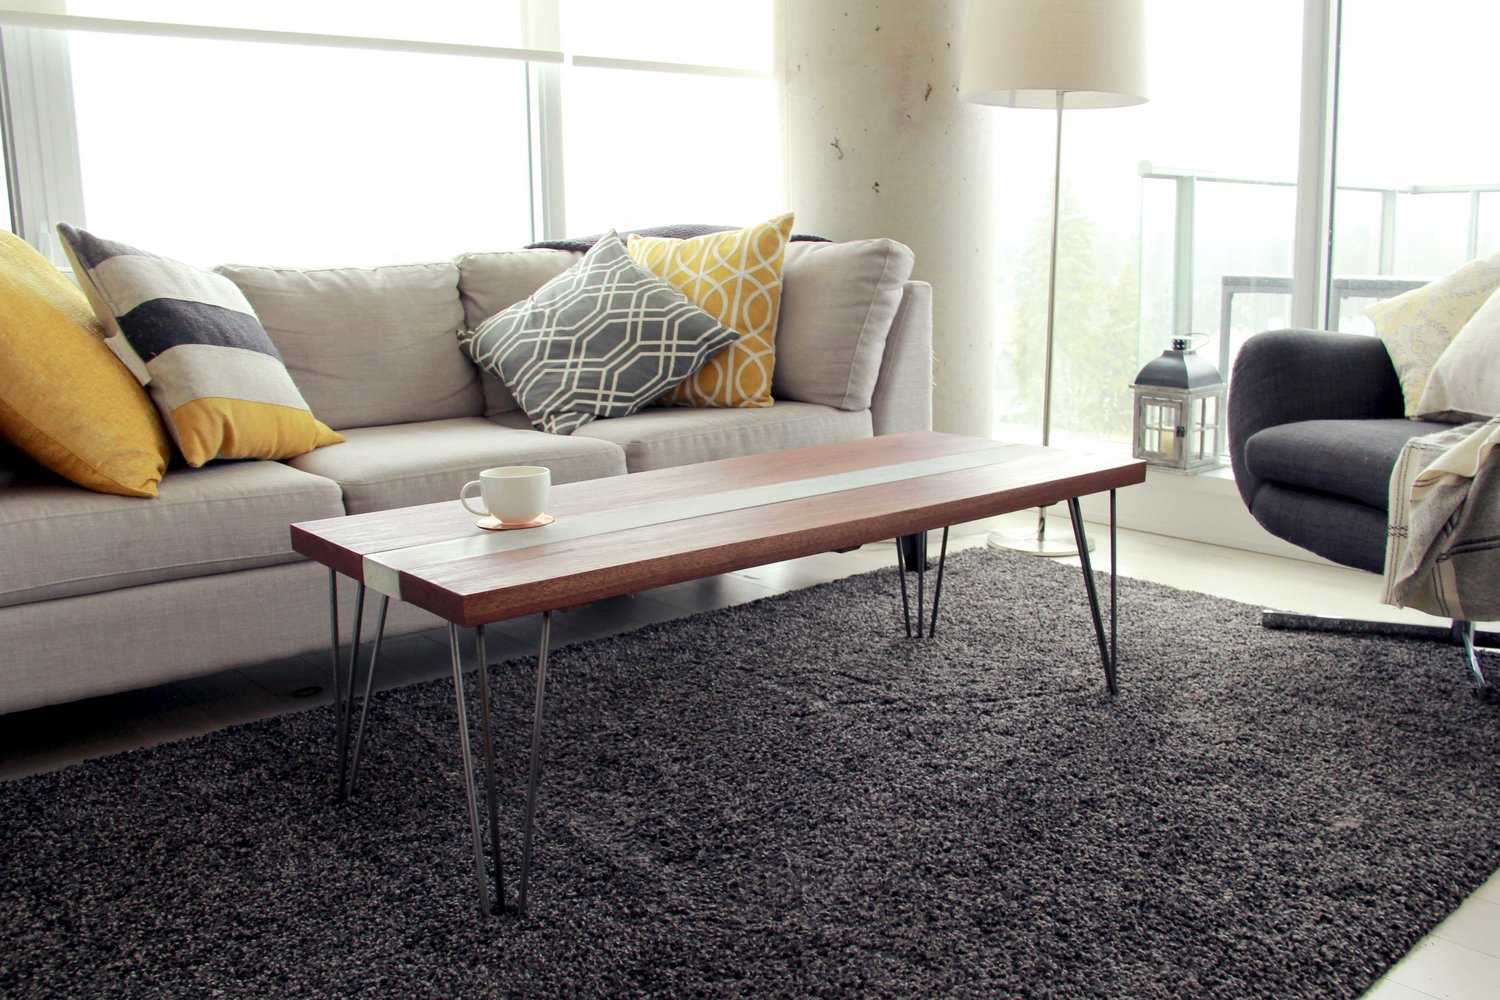 Riverview design solutions concrete walnut table industrial modern furniture loft jpg